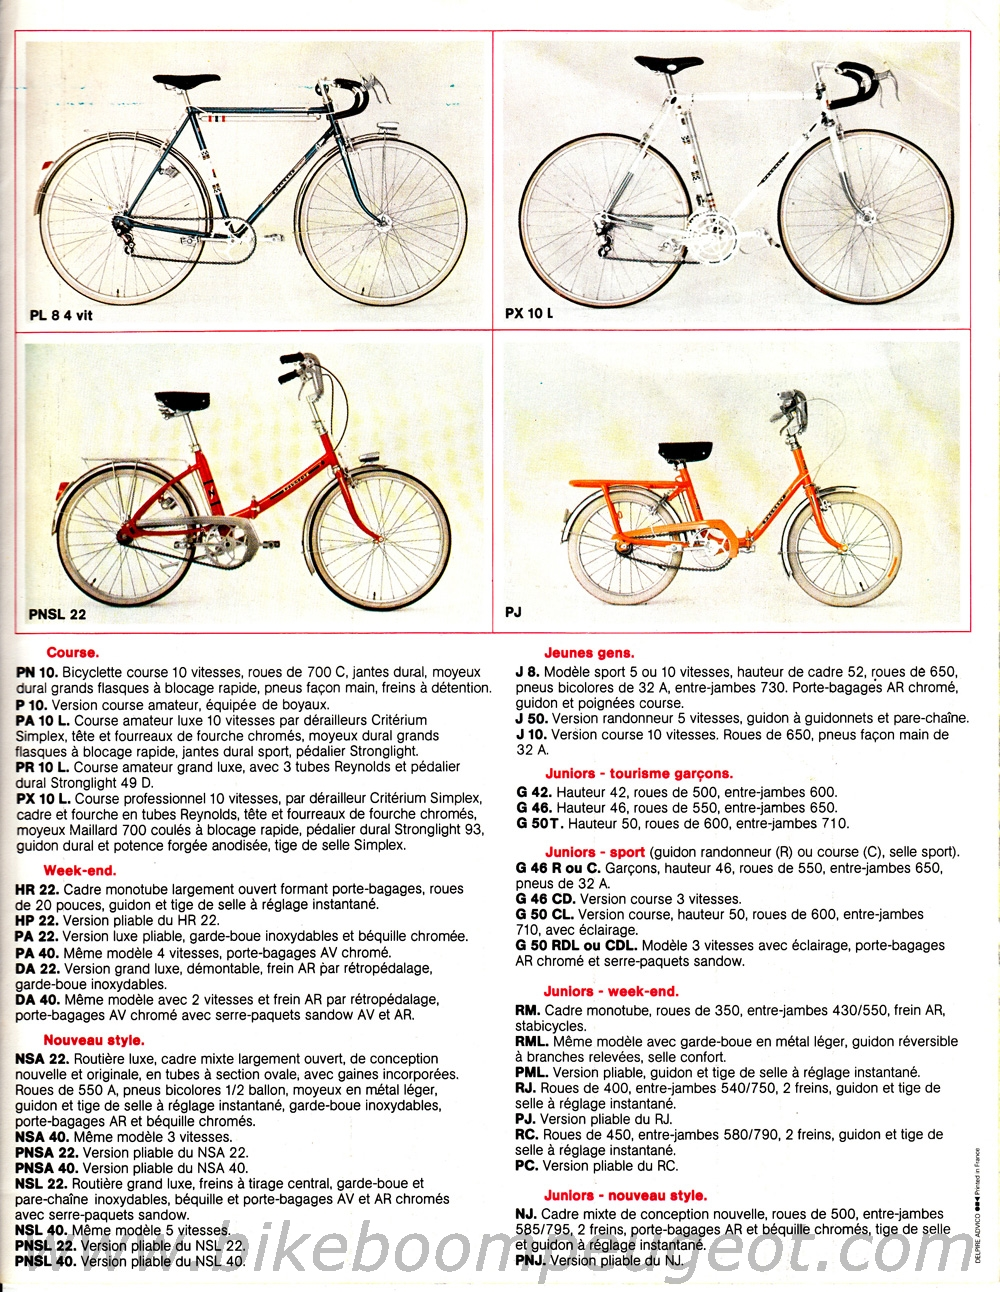 Peugeot PR 10 orange 1970 à 1974 ? Peugeot%201972-1973%20France%20Brochure%20Inside%202